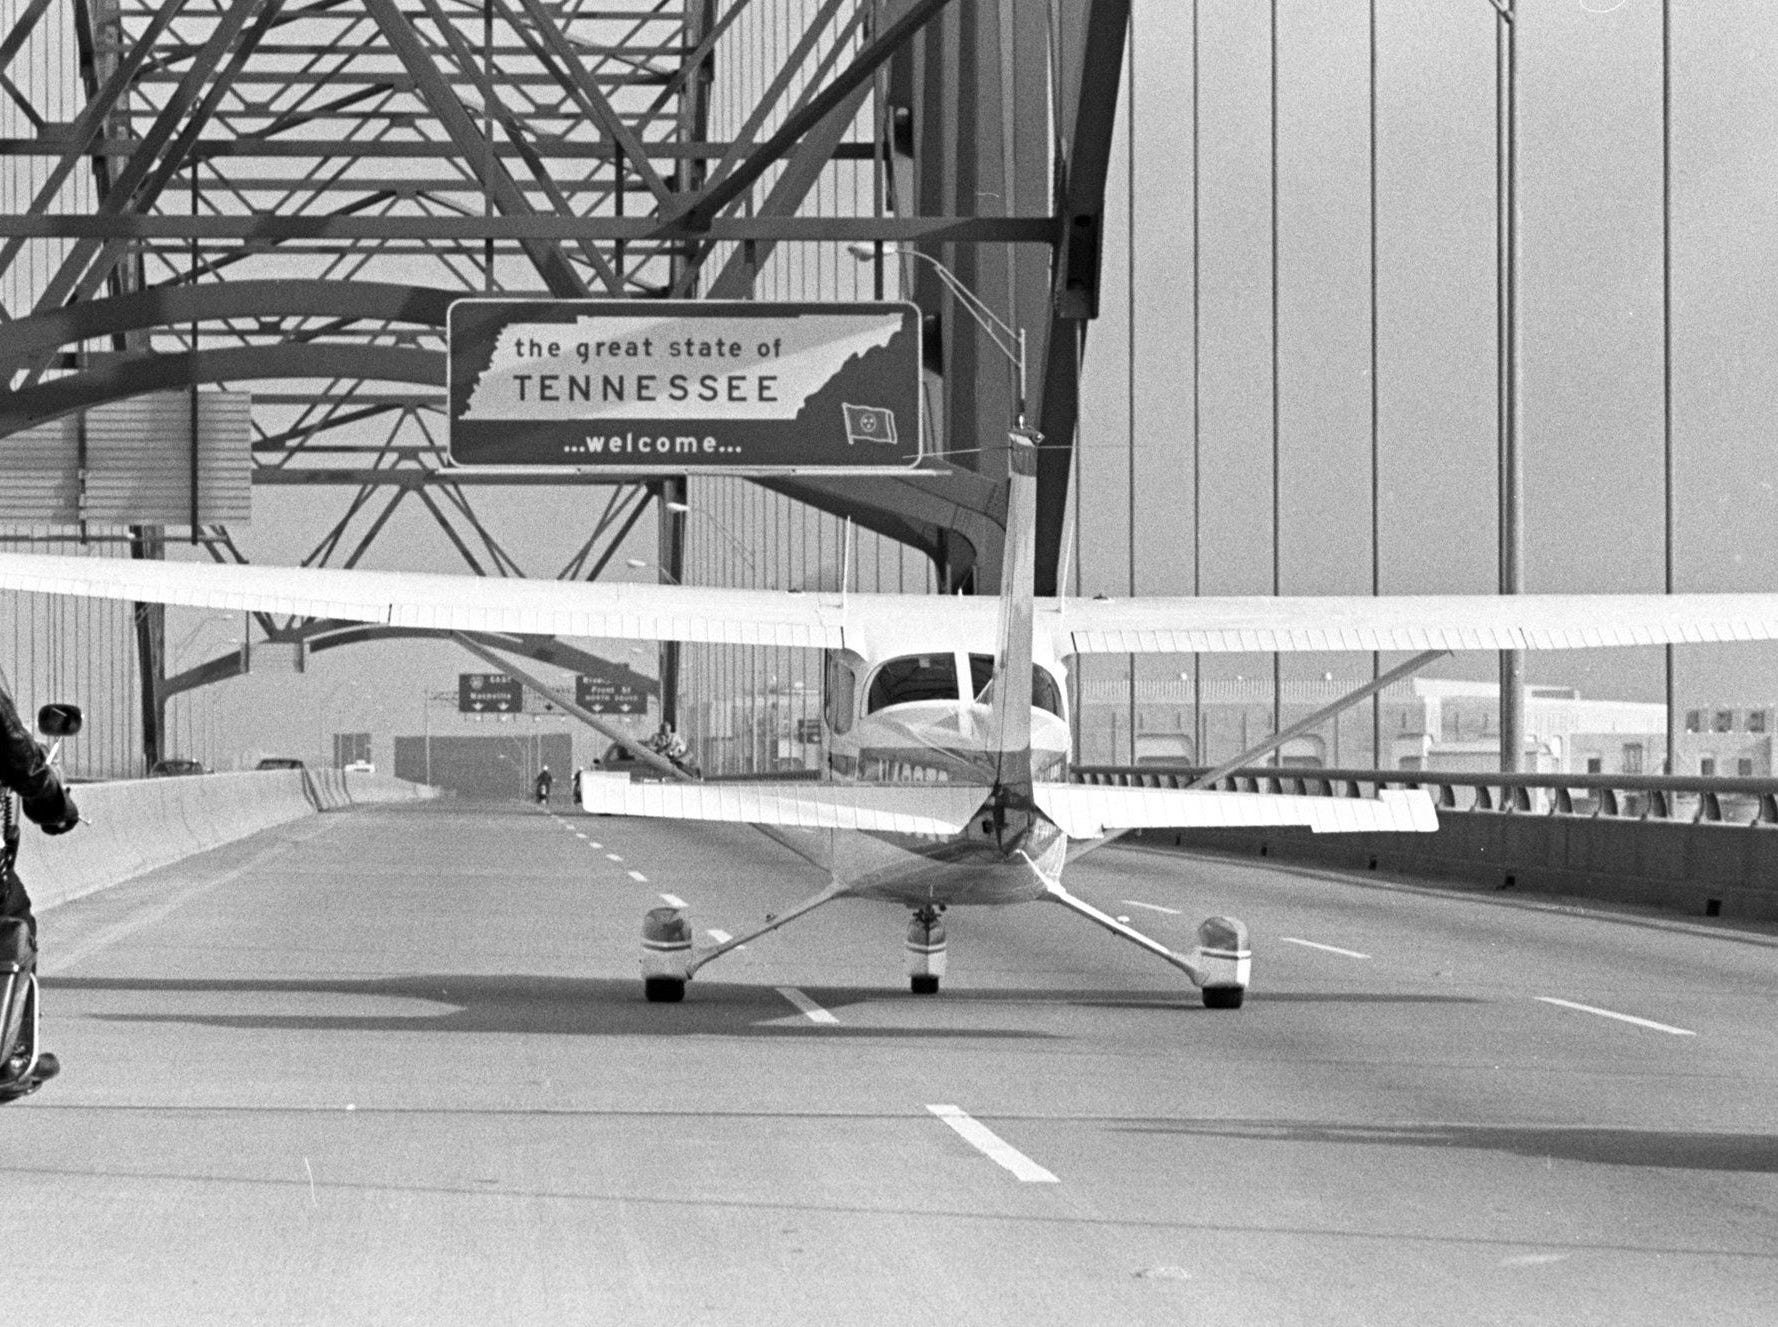 This Cessna aircraft made a temporary landing strip out of an approach to the Hernando DeSoto Bridge on its way to the Mid-American Outdoor Recreation Show in the Cook Convention Center on 22 Jan 1975. The plane, piloted by Bill Rachels Jr., landed on the bridge because it was the easiest way to get it to the convention building. The bridge and the approaches to both ends were closed by police for the landing.